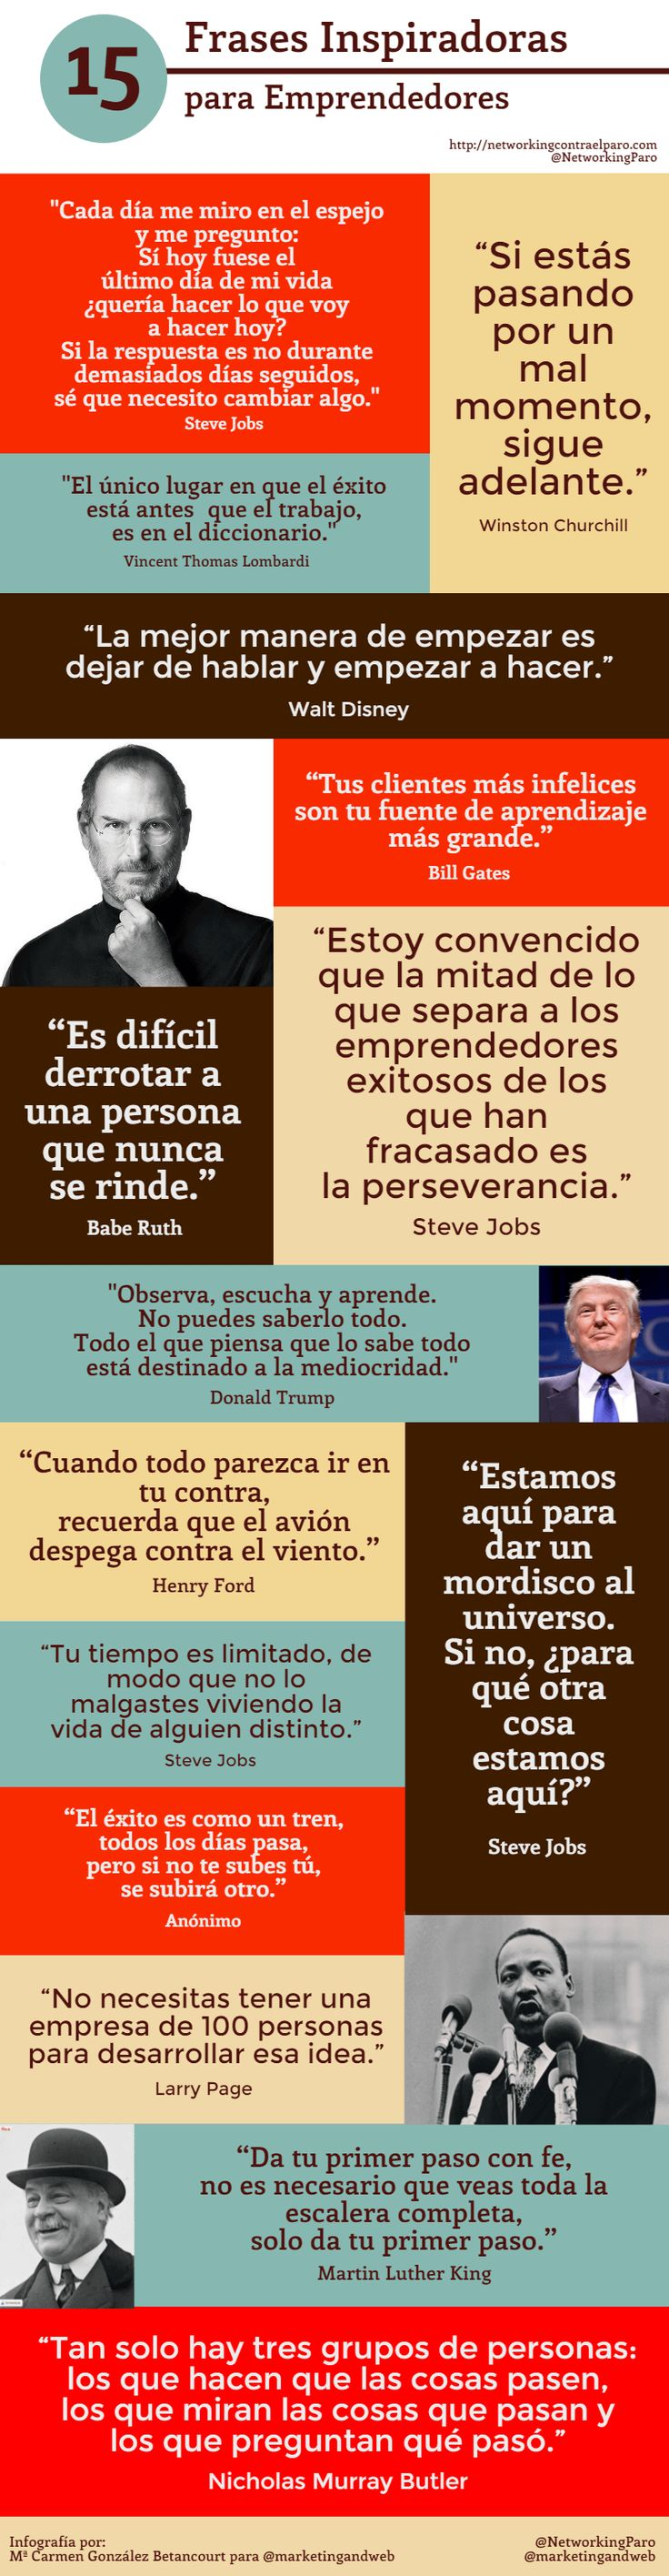 15 Frases motivadoras para emprendedores by @NetworkingParo via @marketingandweb